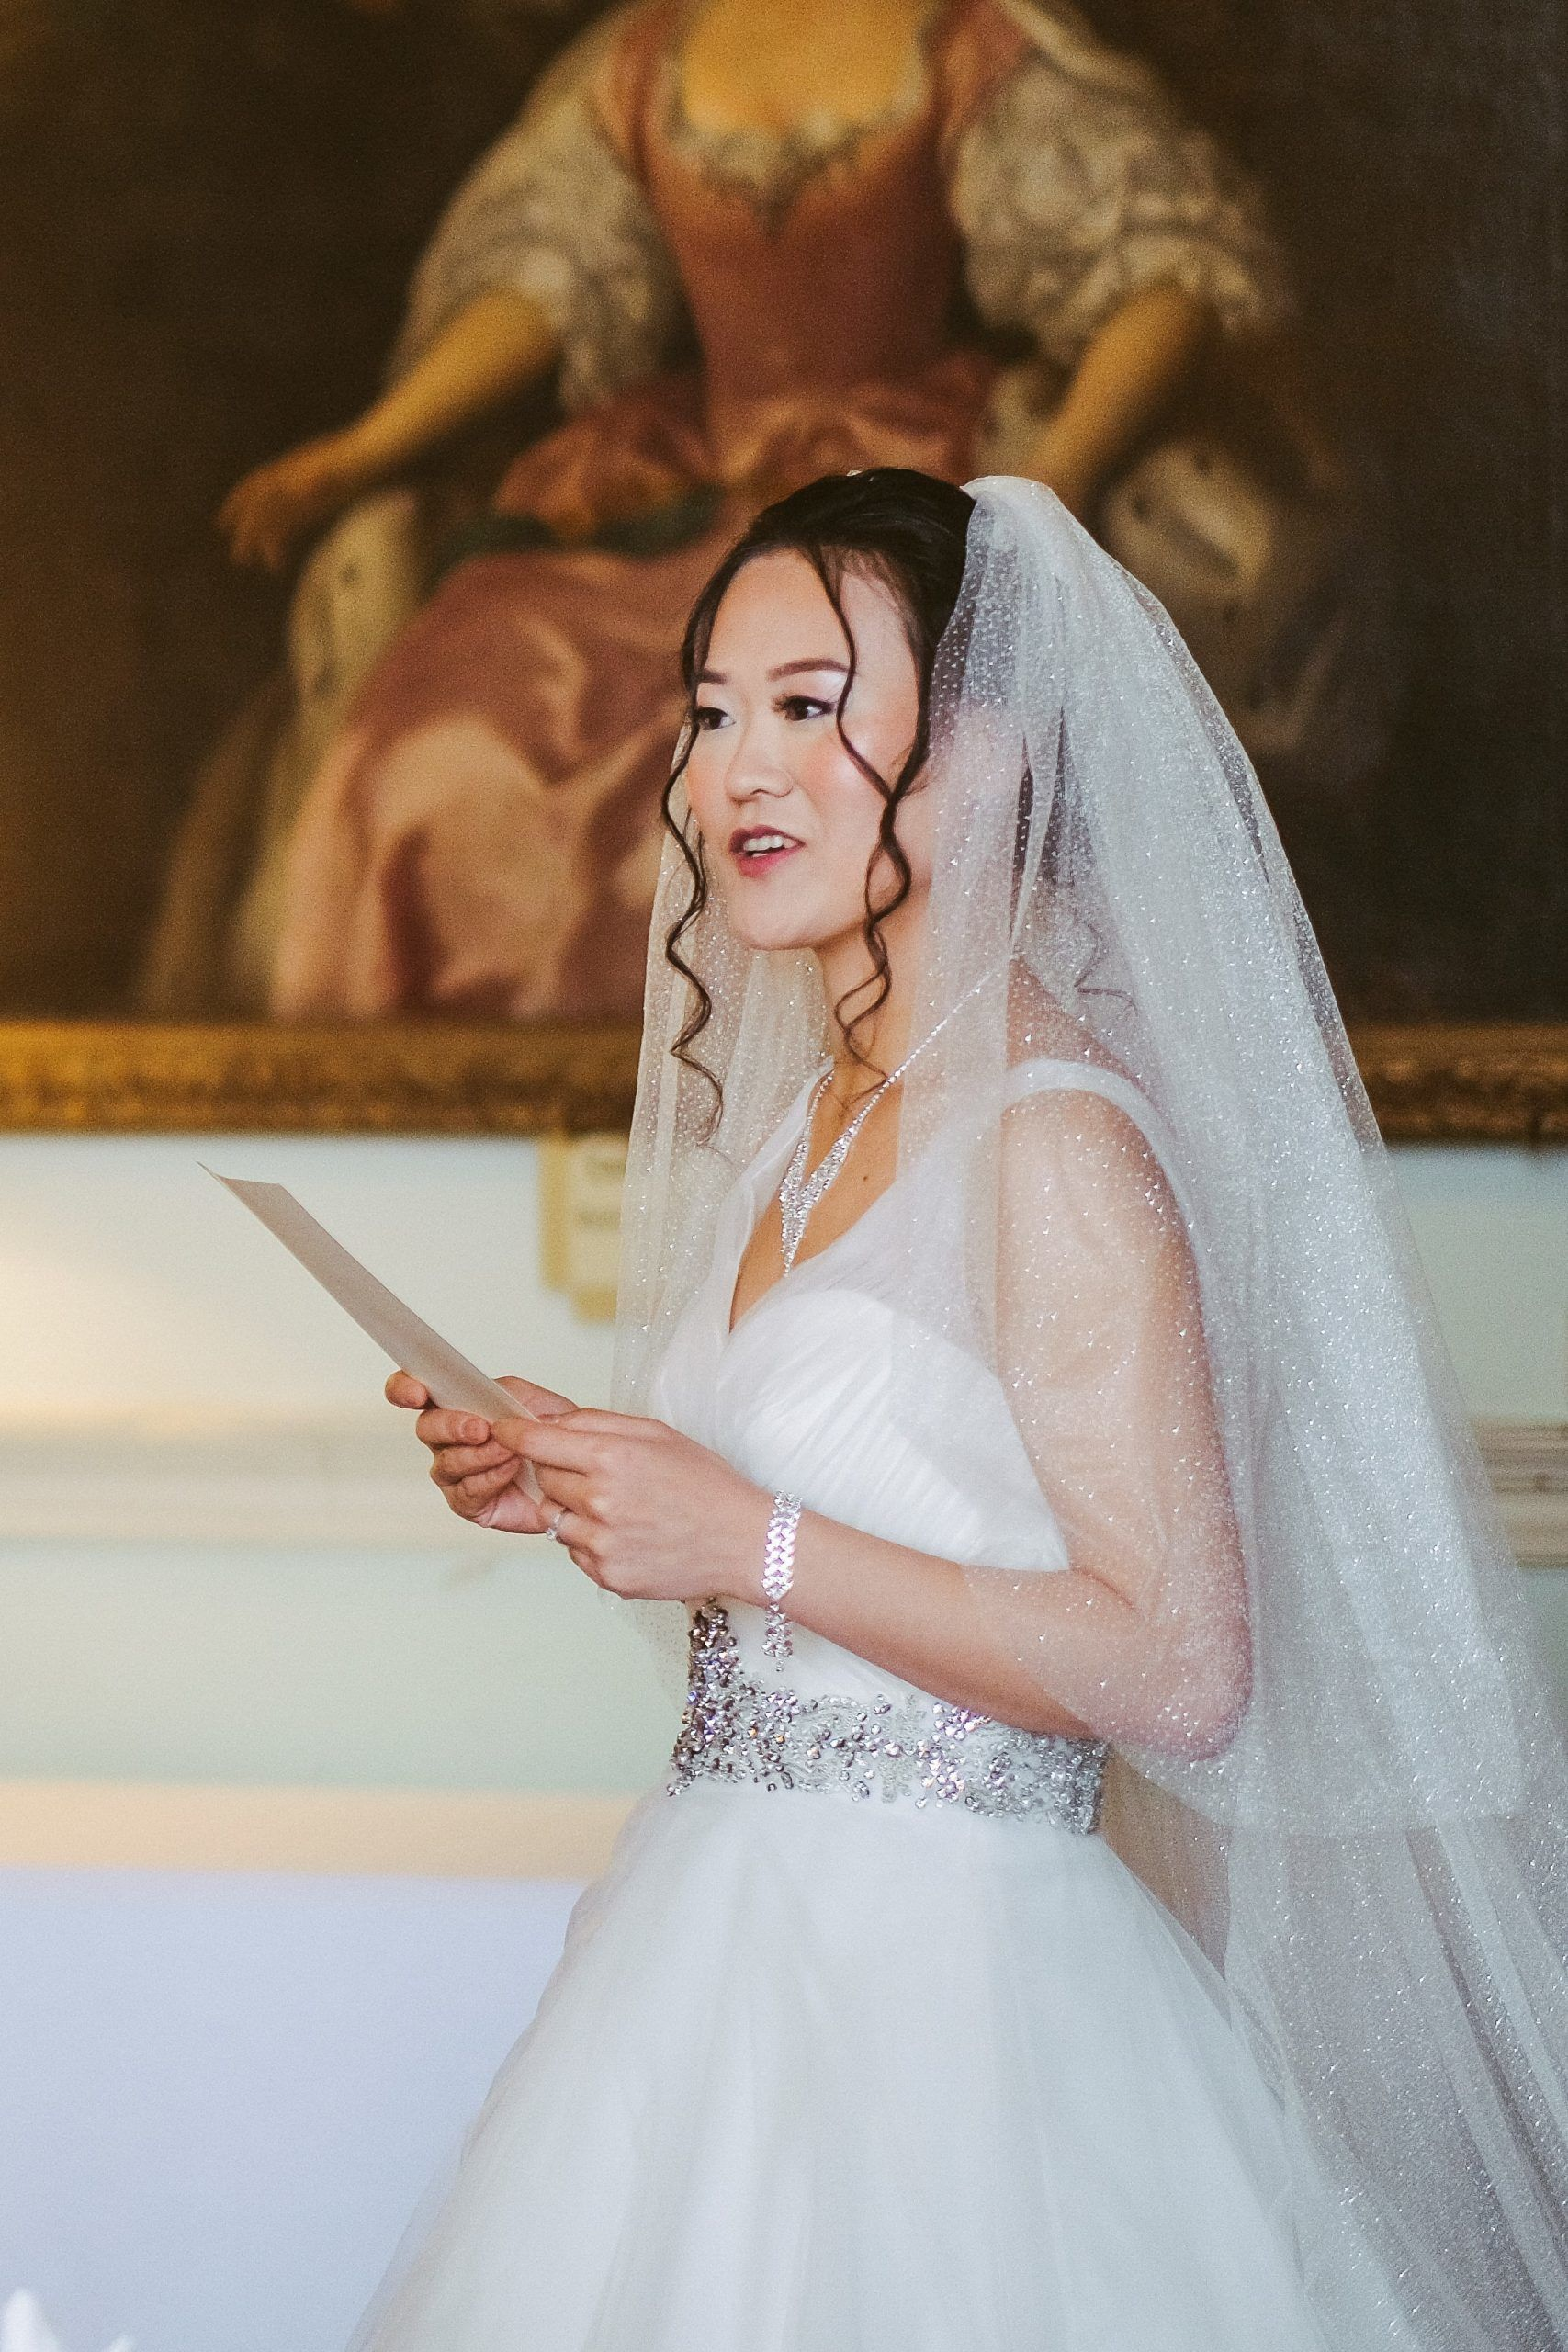 Bride gives speech, showing off natural, glowing bridal makeup and loosely curled wedding day updo with veil.